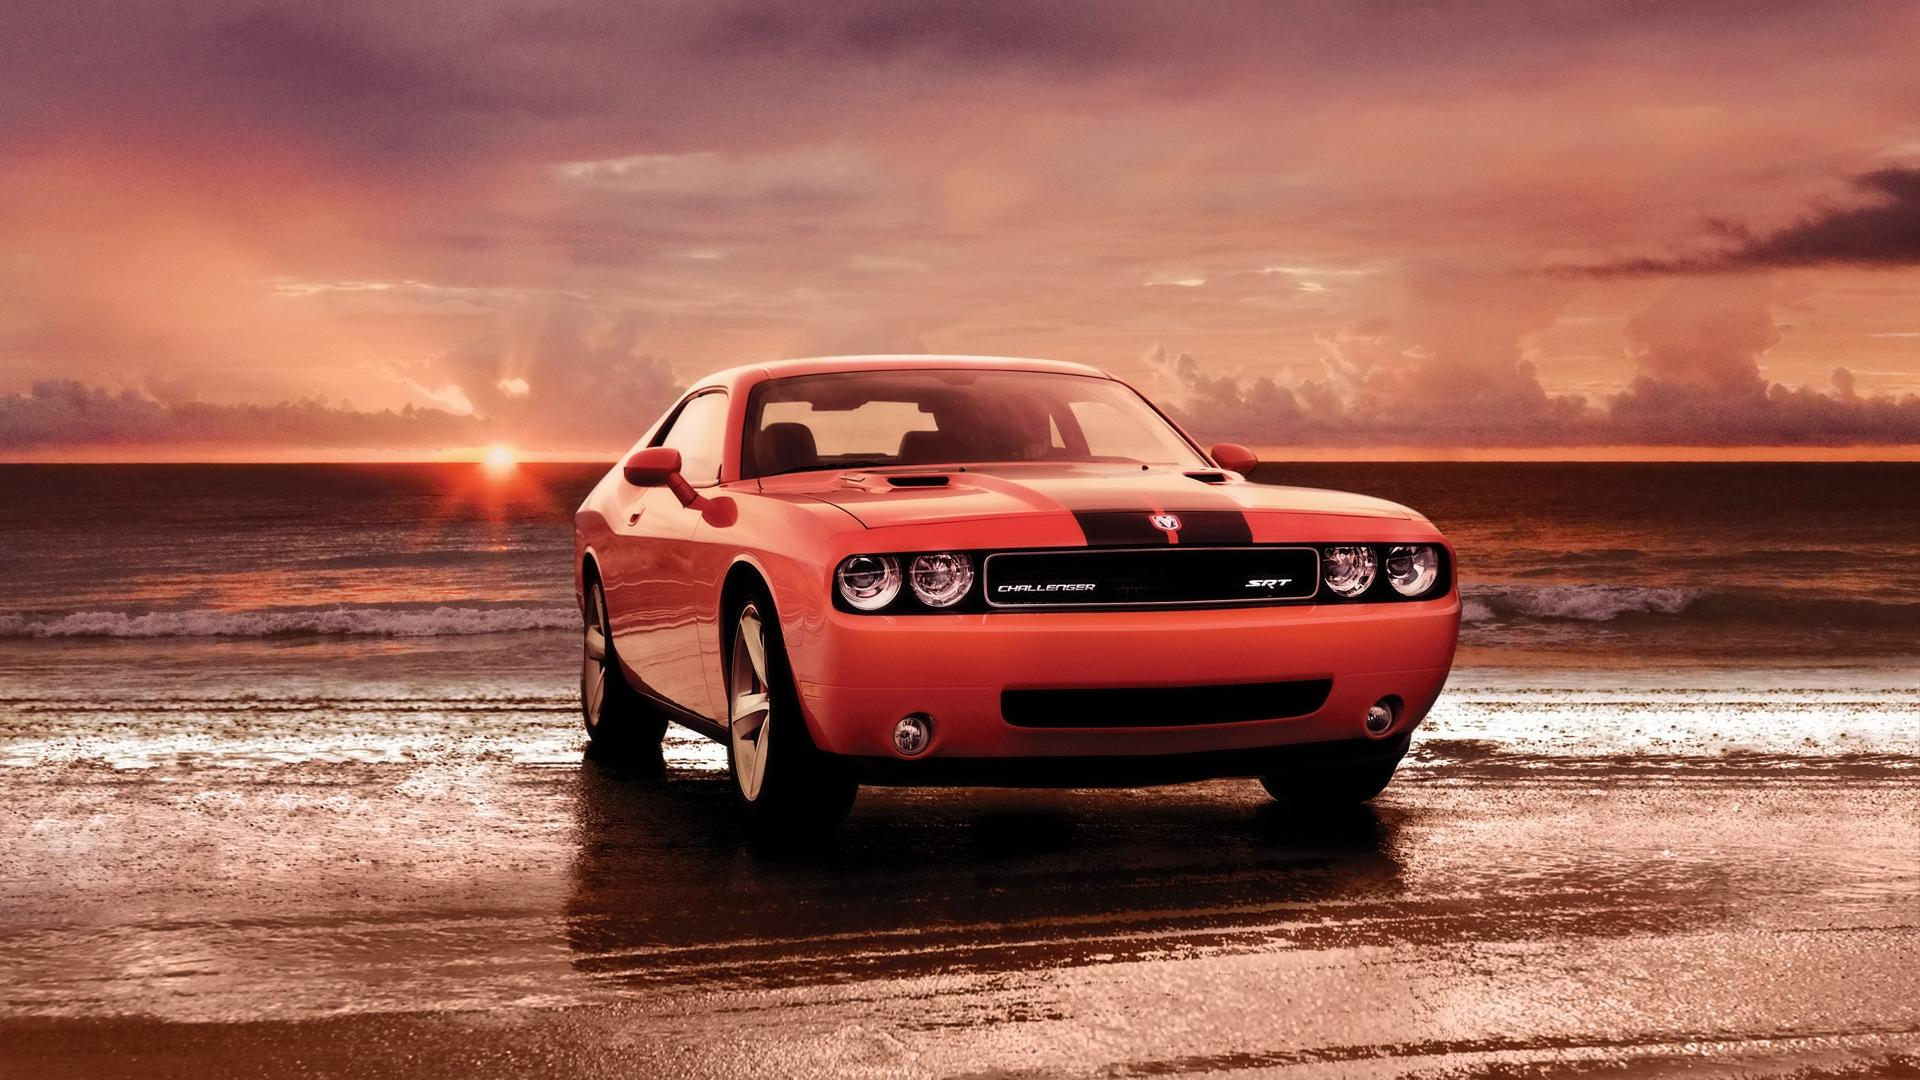 2008 Dodge Challenger Srt8 Front Shore 1920x1080